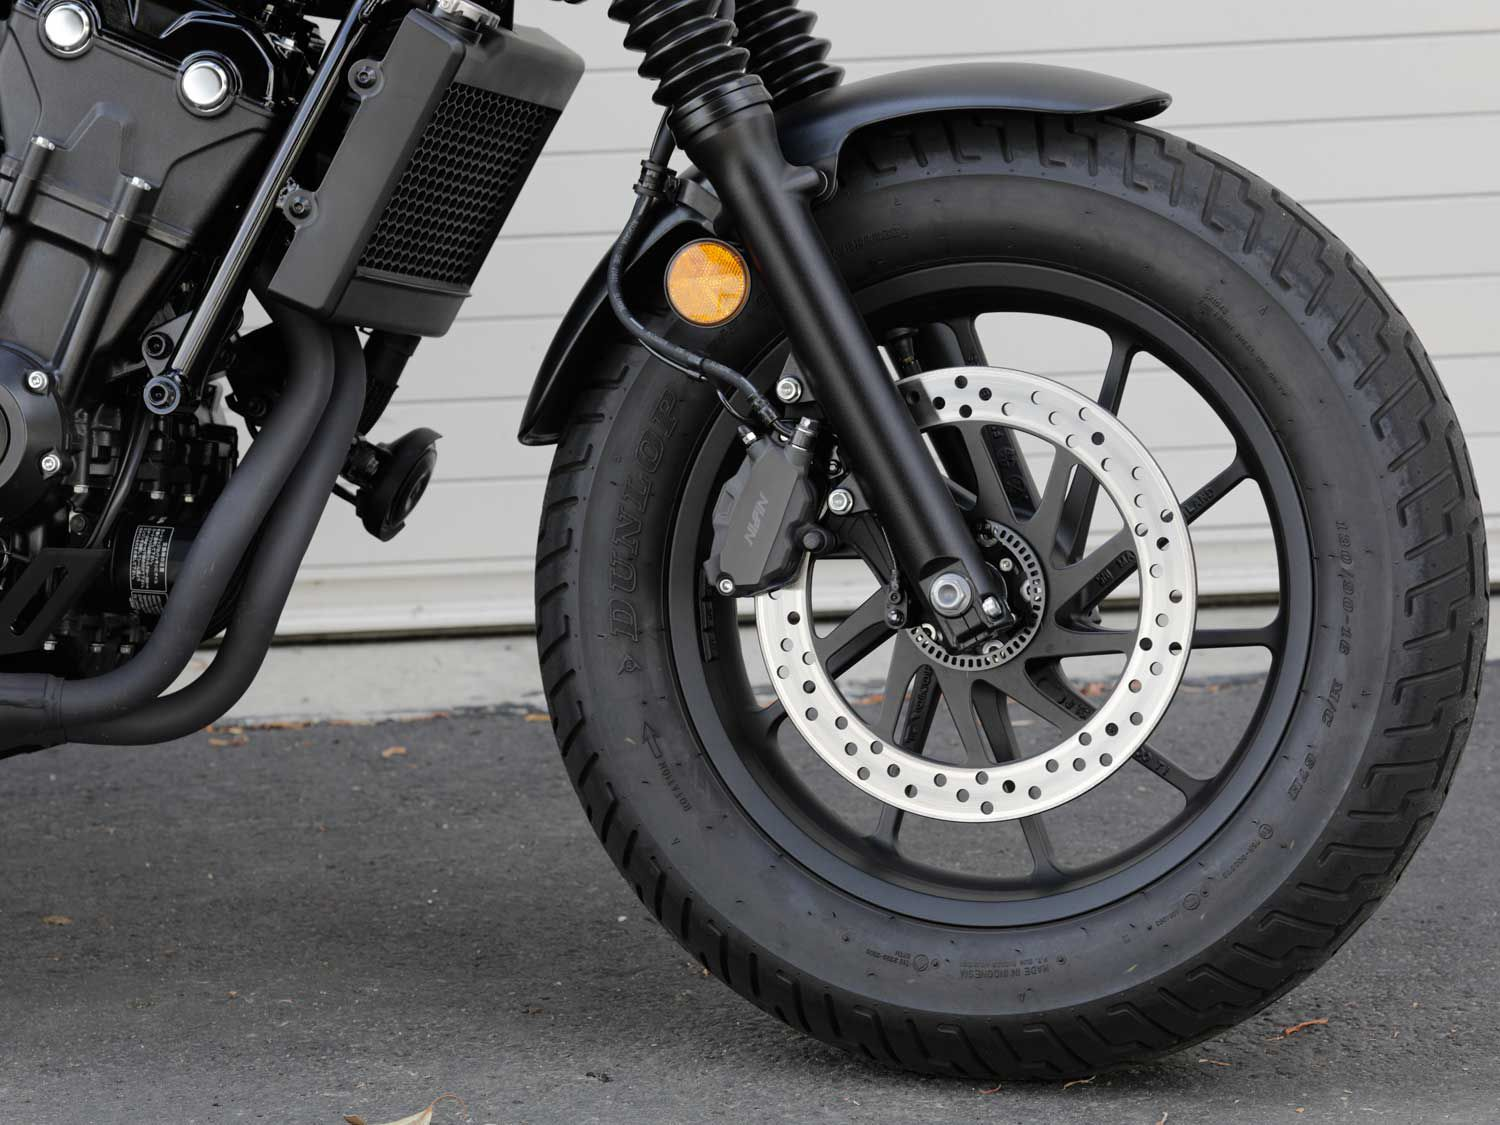 The Rebel 500 rolls on 16-inch cast alloy wheels. Sturdy hydraulic disc brakes, with fixed, always-on ABS do a fine job of slowing down the 414-pound Rebel.